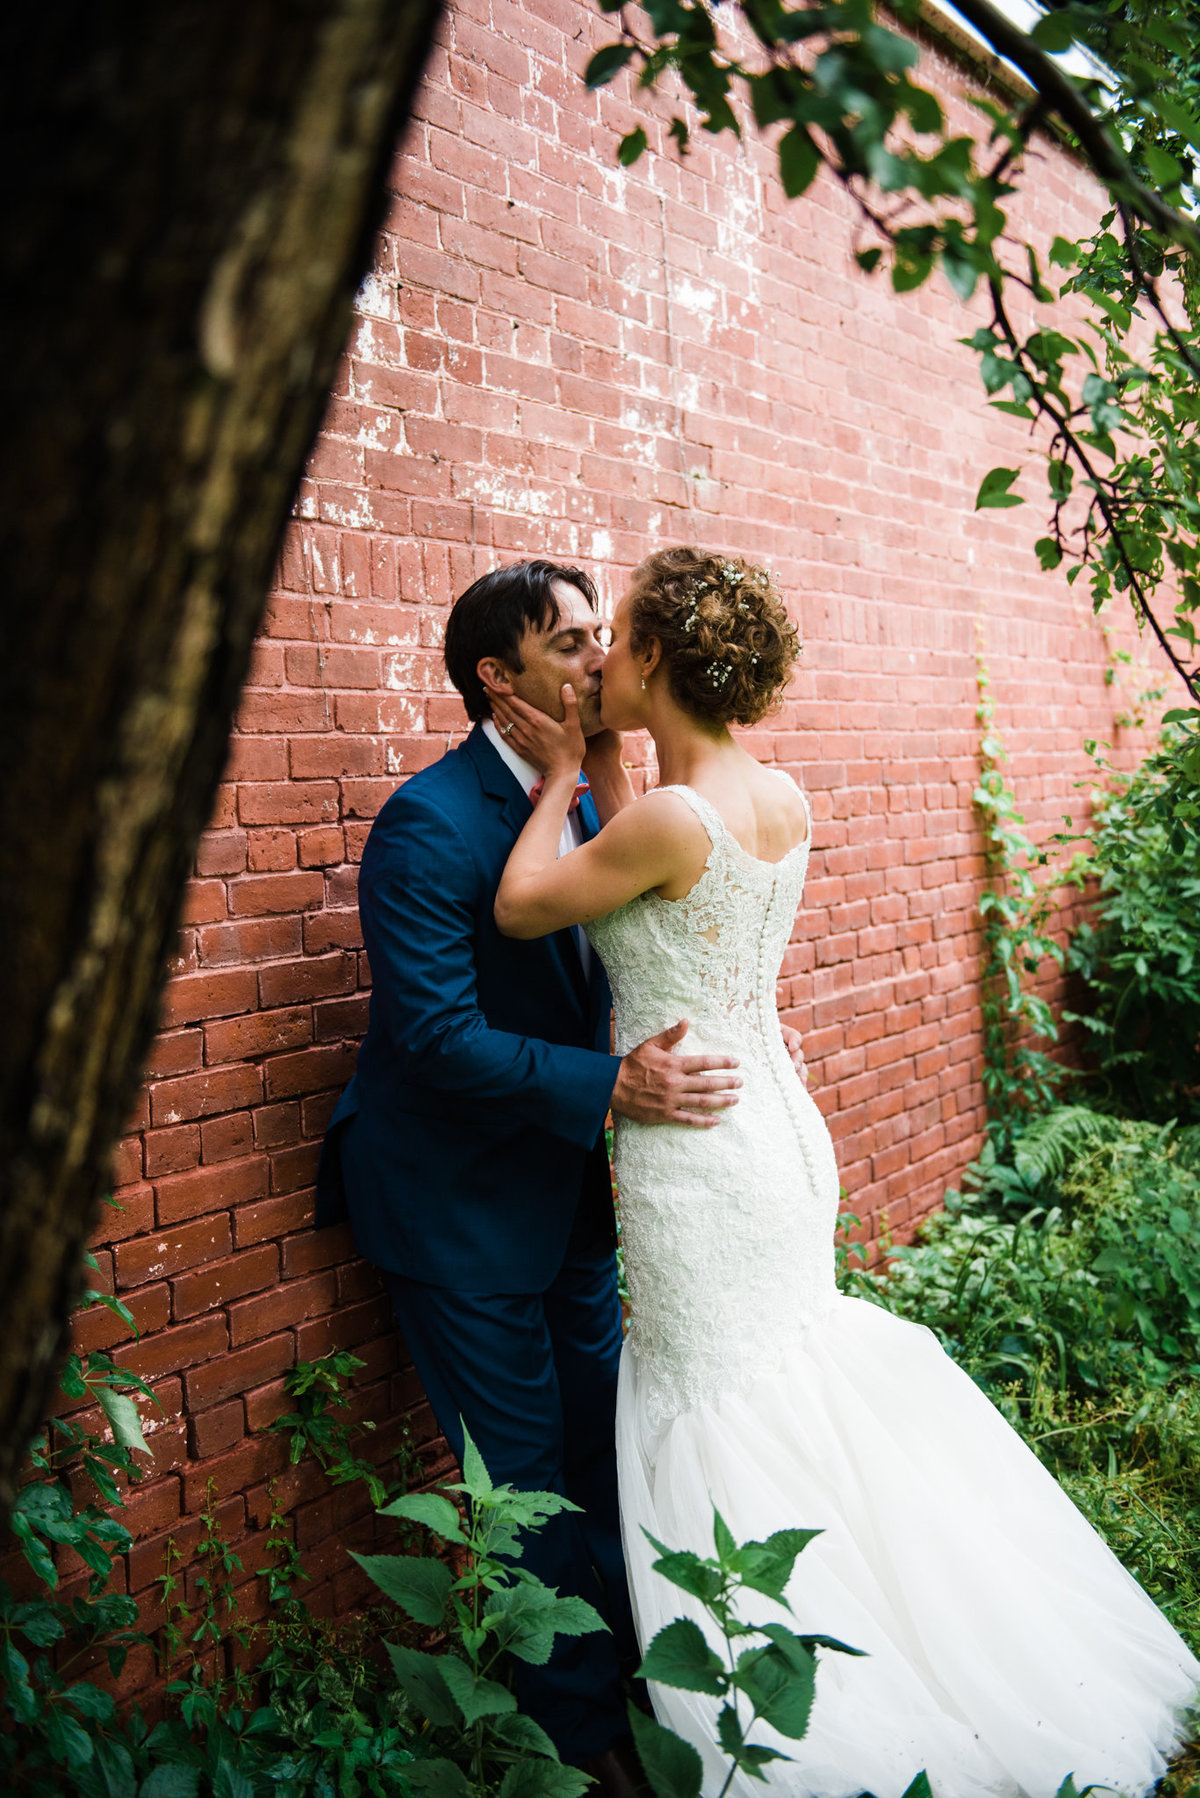 Lyman Estate bride and groom by brick wall